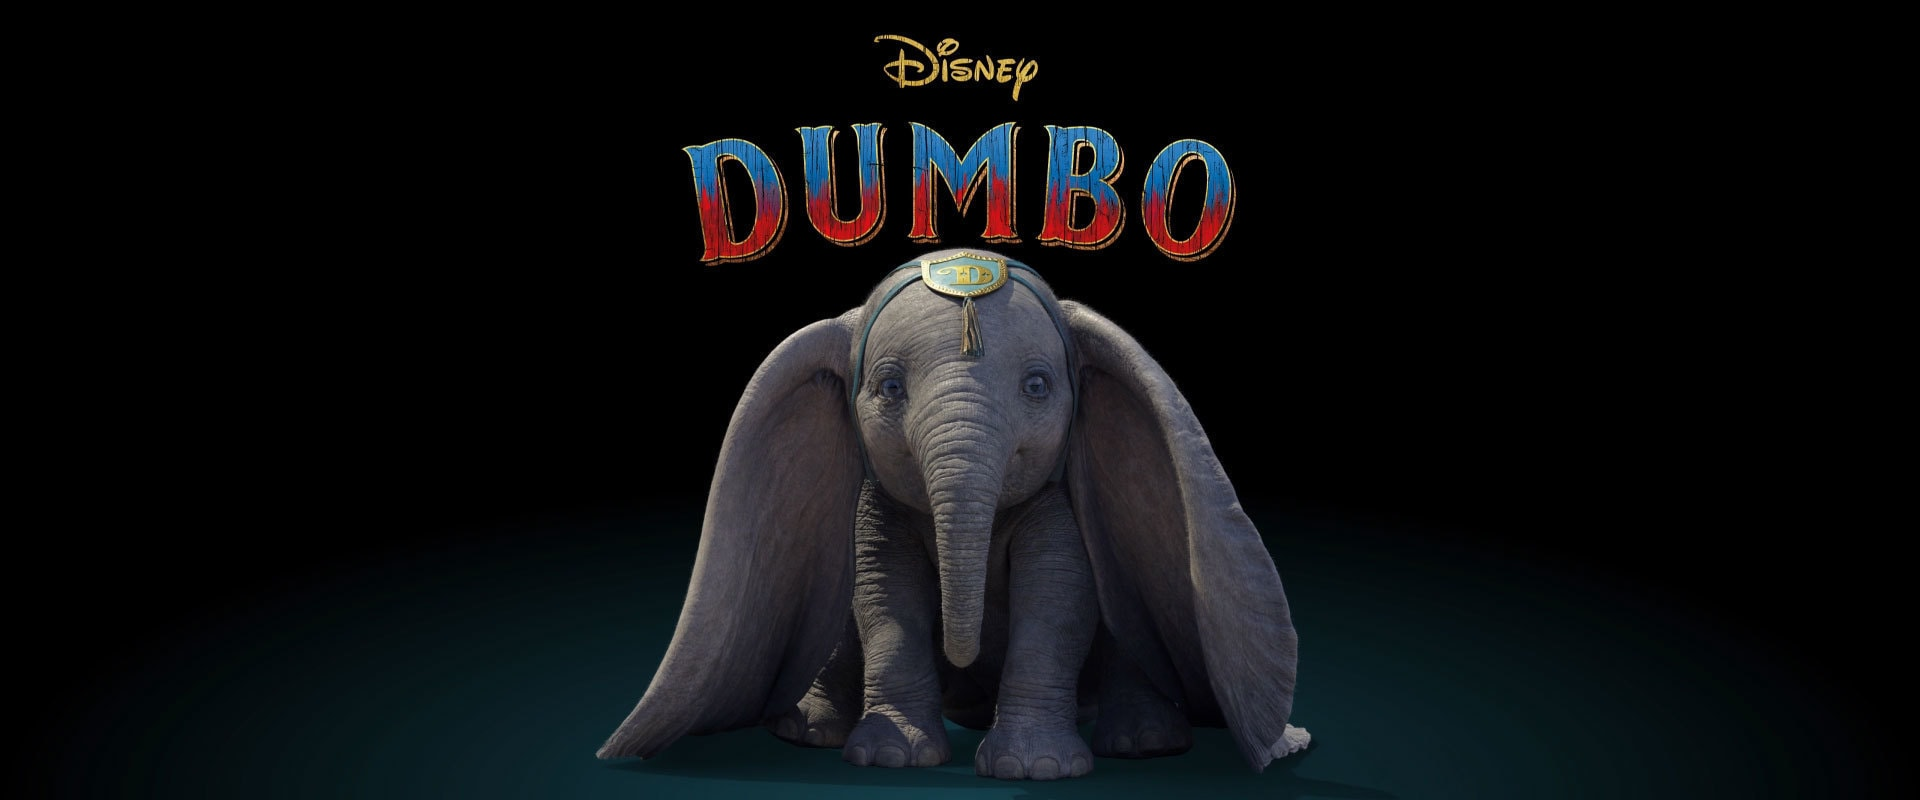 Dumbo - In Cinemas - Animated Banner